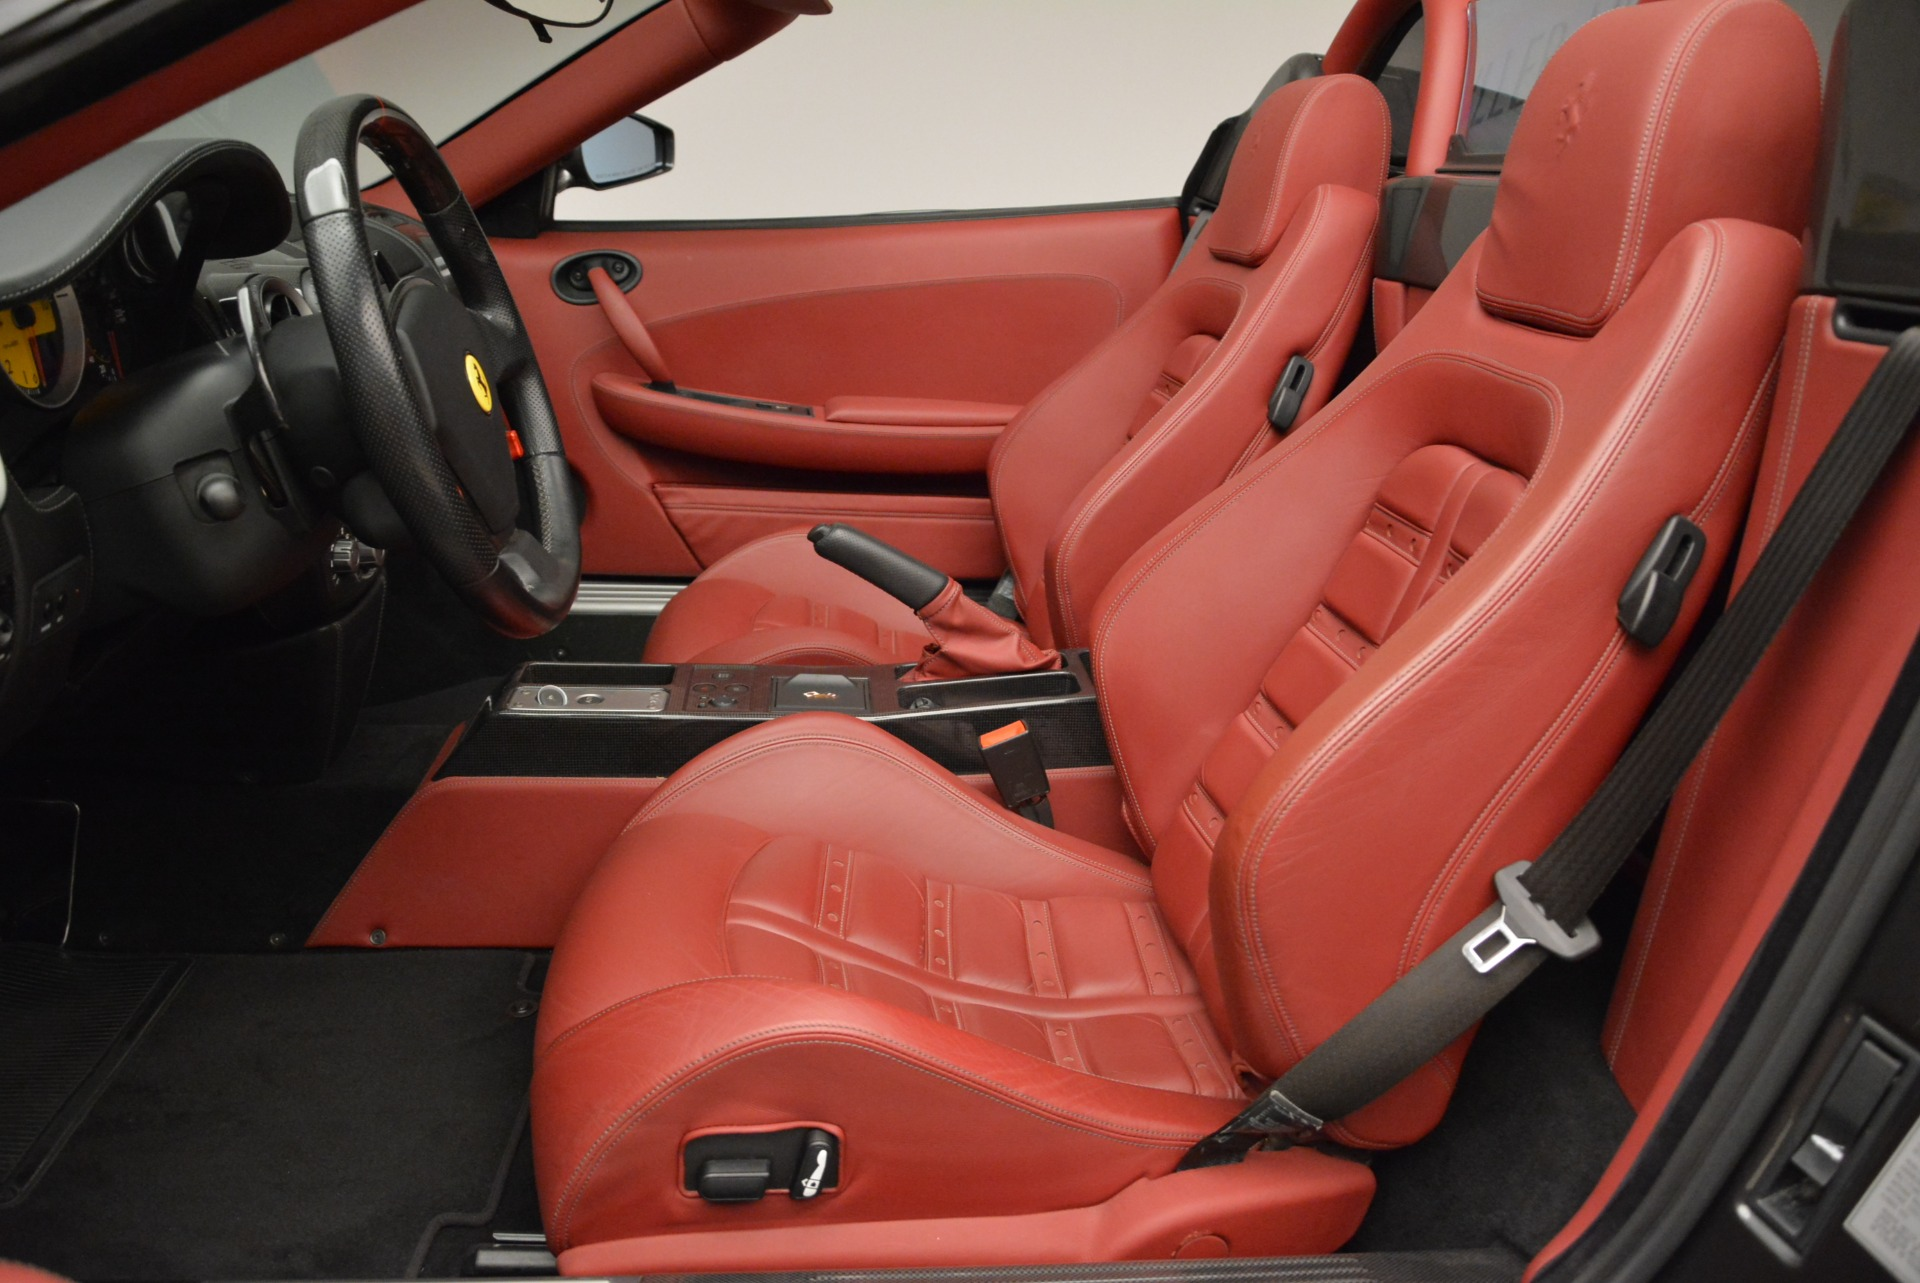 Used 2008 Ferrari F430 Spider  For Sale In Westport, CT 1883_p26